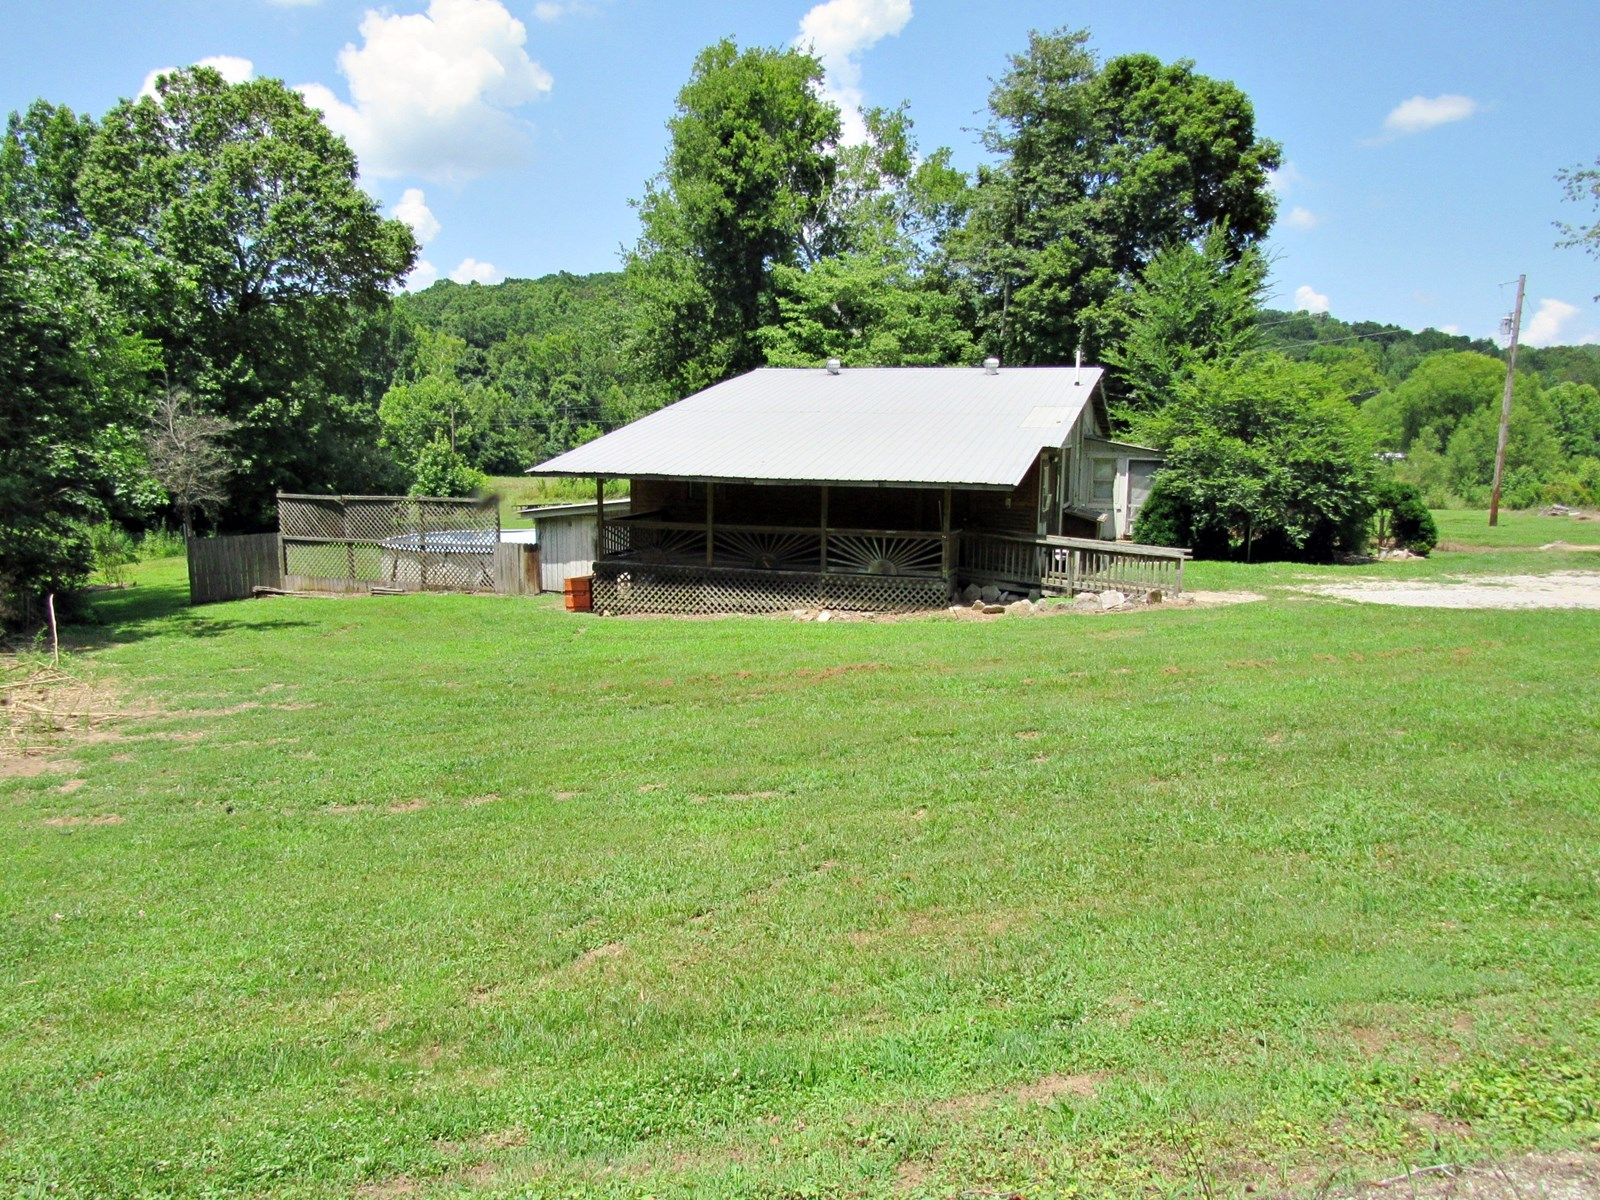 Home & 9.6 Acres w/ Creek Frontage, Pasture & Pond $89,900